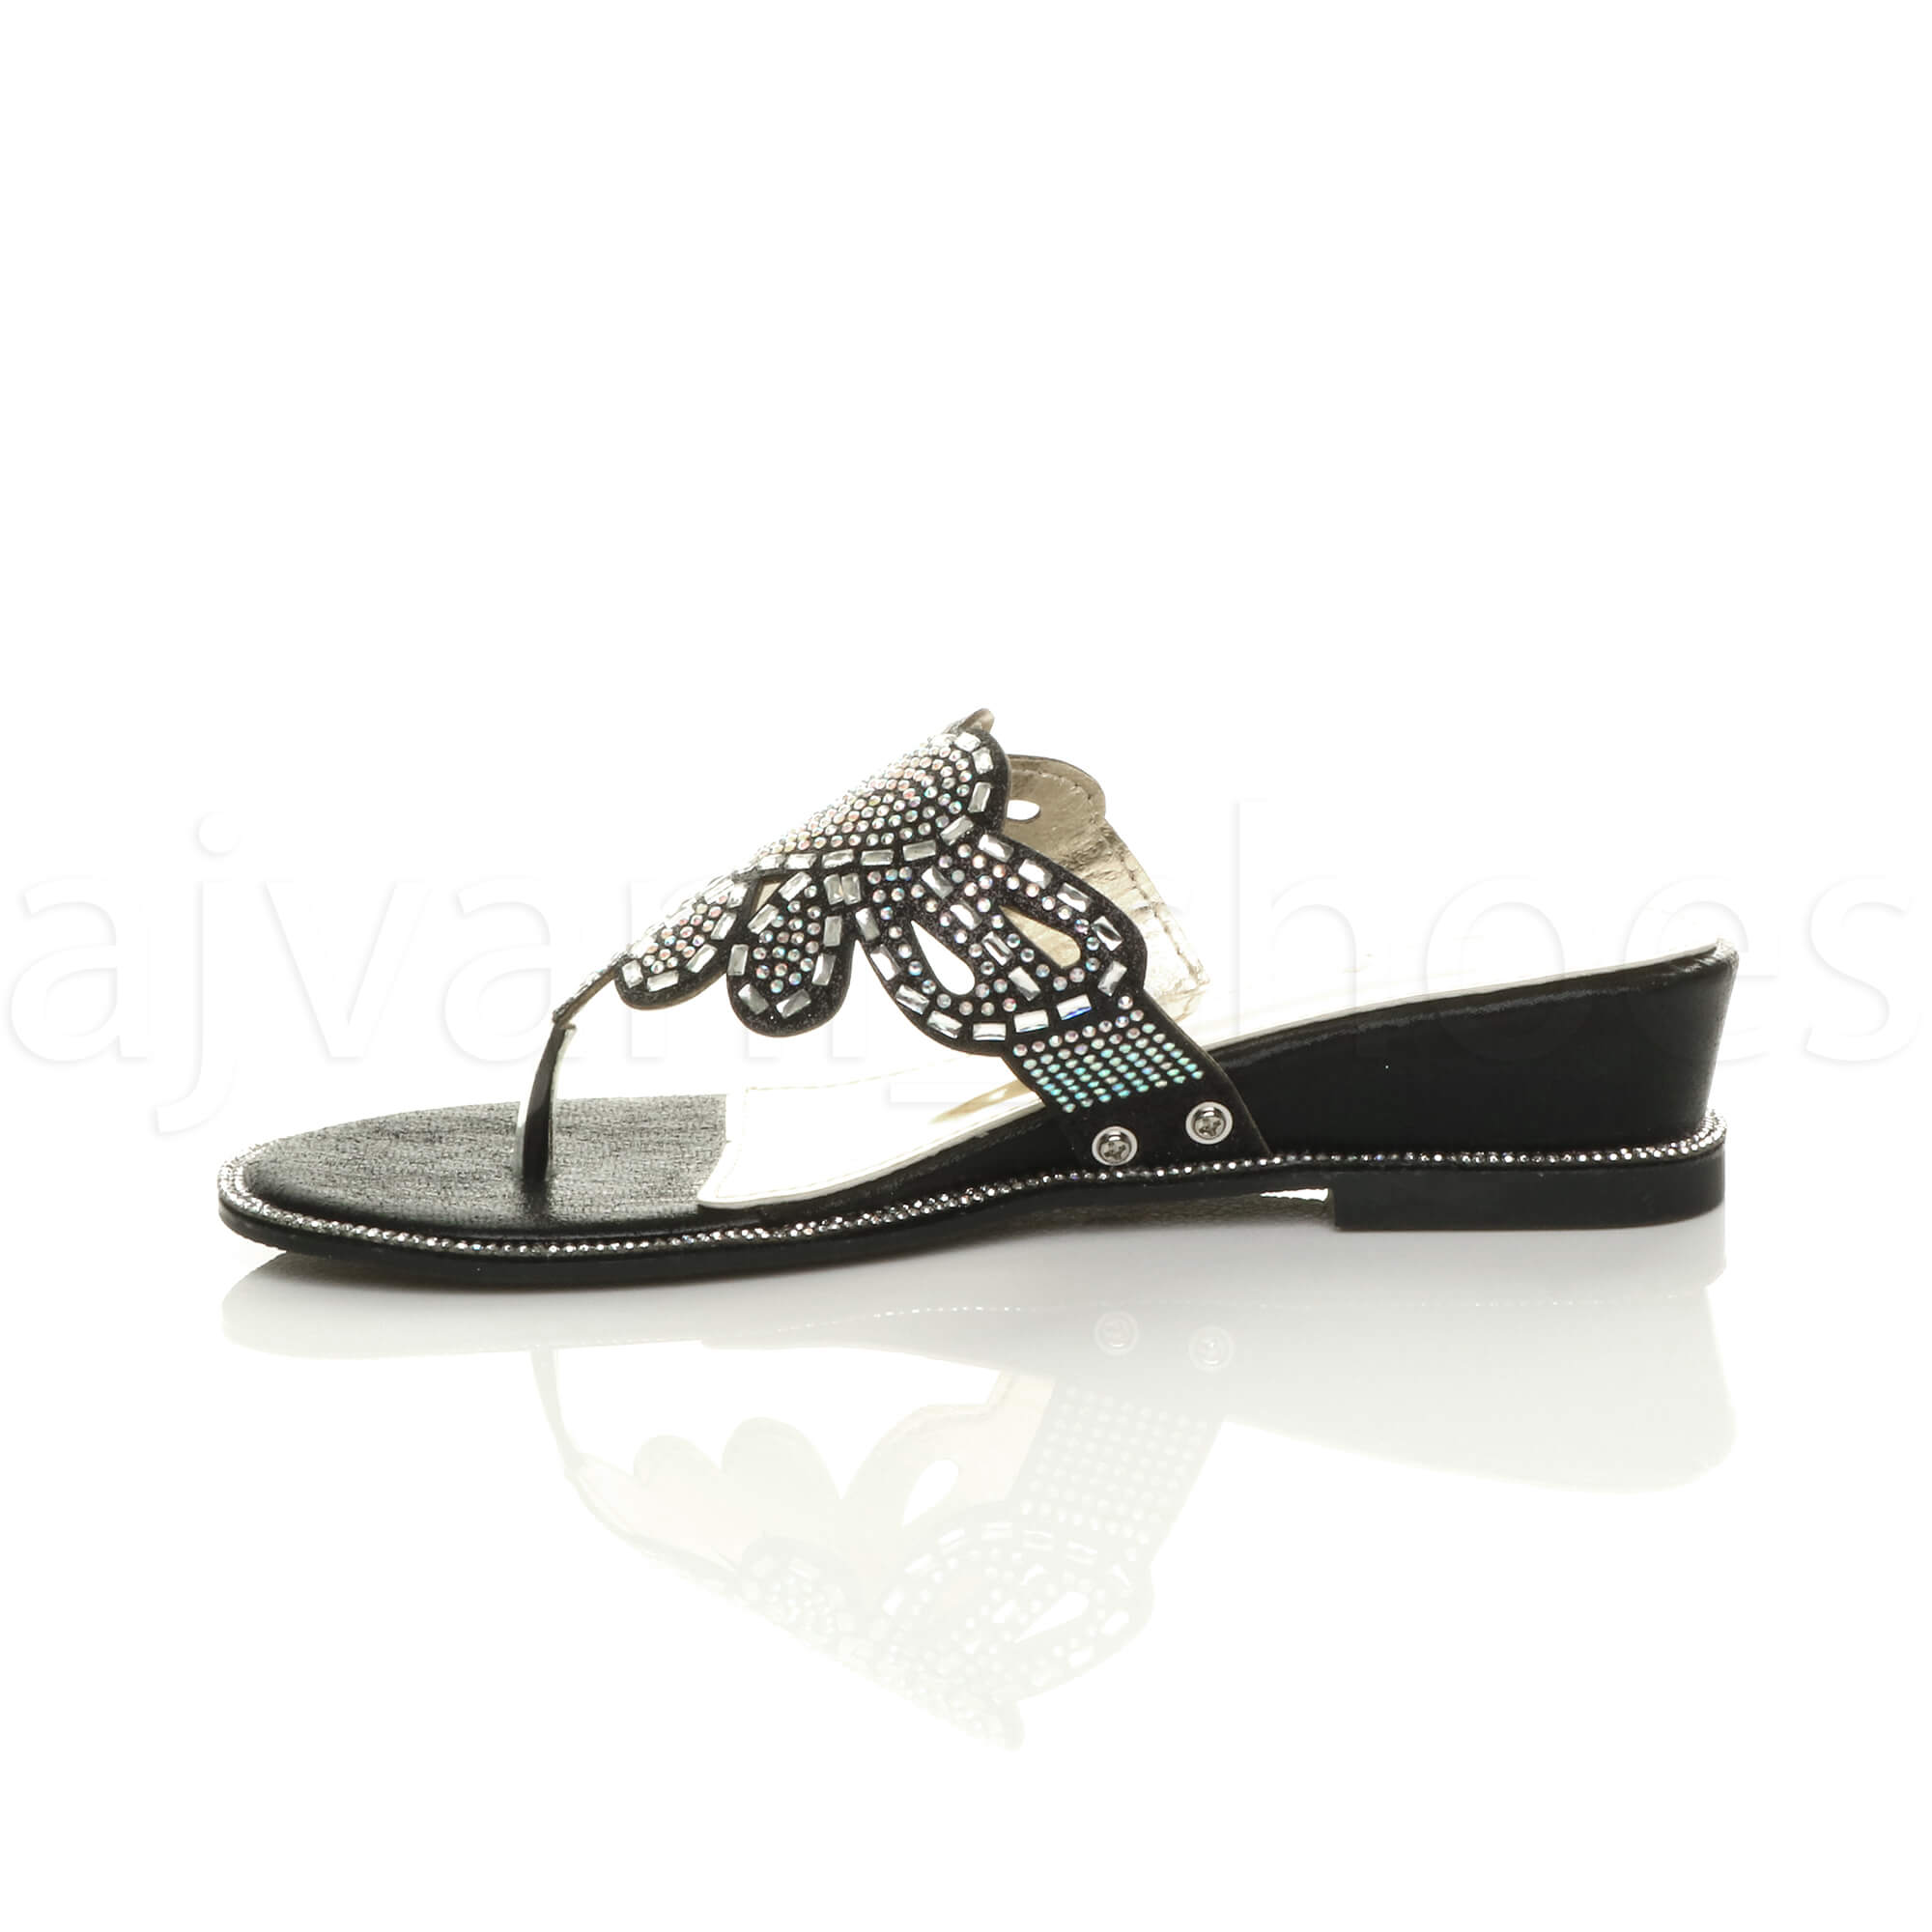 WOMENS-LADIES-LOW-MID-WEDGE-HEEL-DIAMANTE-EVENING-TOE-POST-SANDALS-MULES-SIZE thumbnail 4